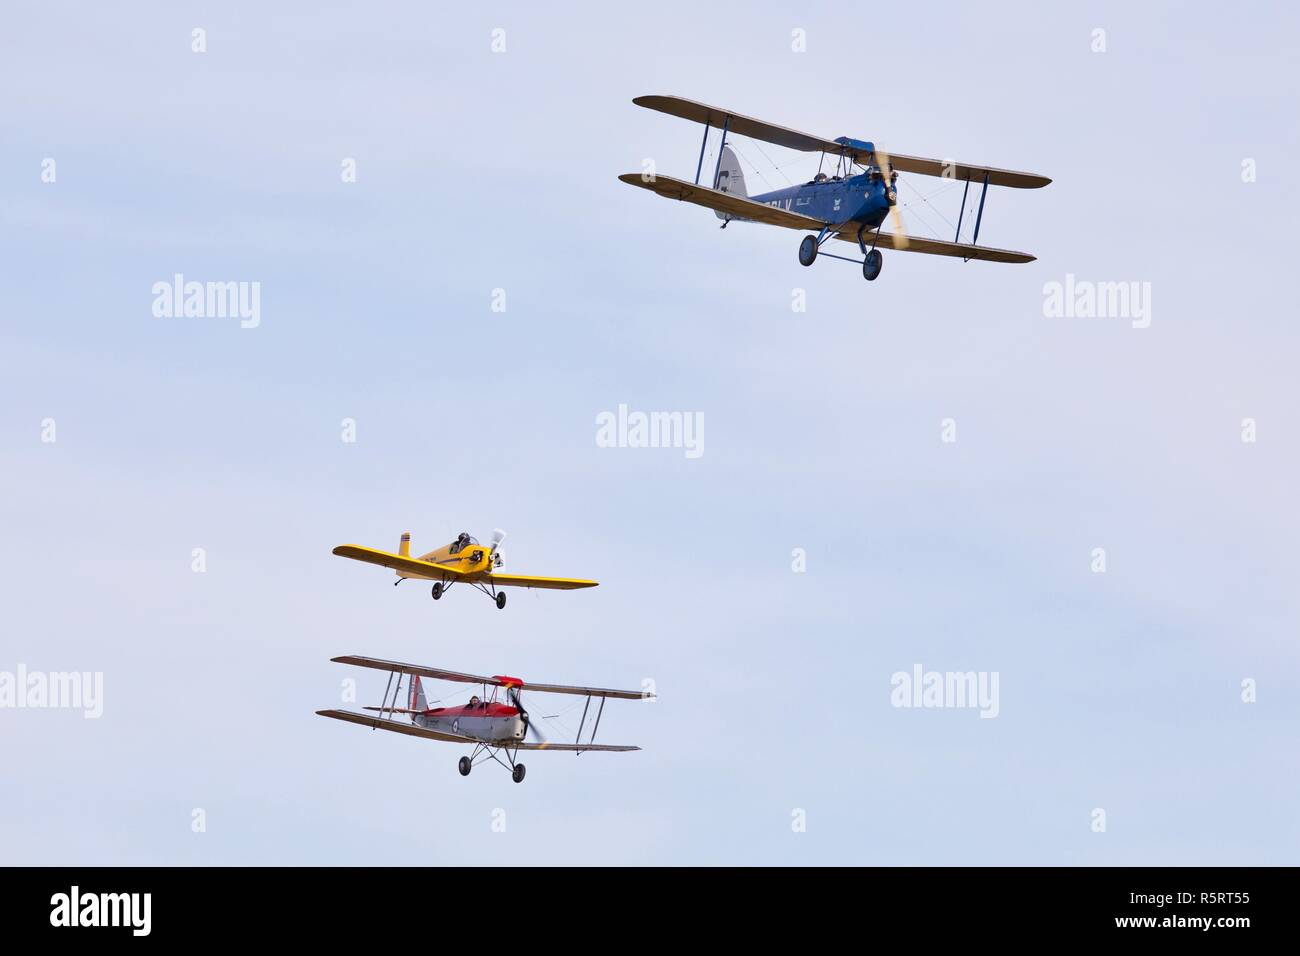 1925 DH60 Cirrus Moth, 1931 DH82a Tiger Moth and a Druine D-31 Turbulent acting out a air race at Shuttleworth Race Day Airshow on the 7 October 2018 - Stock Image